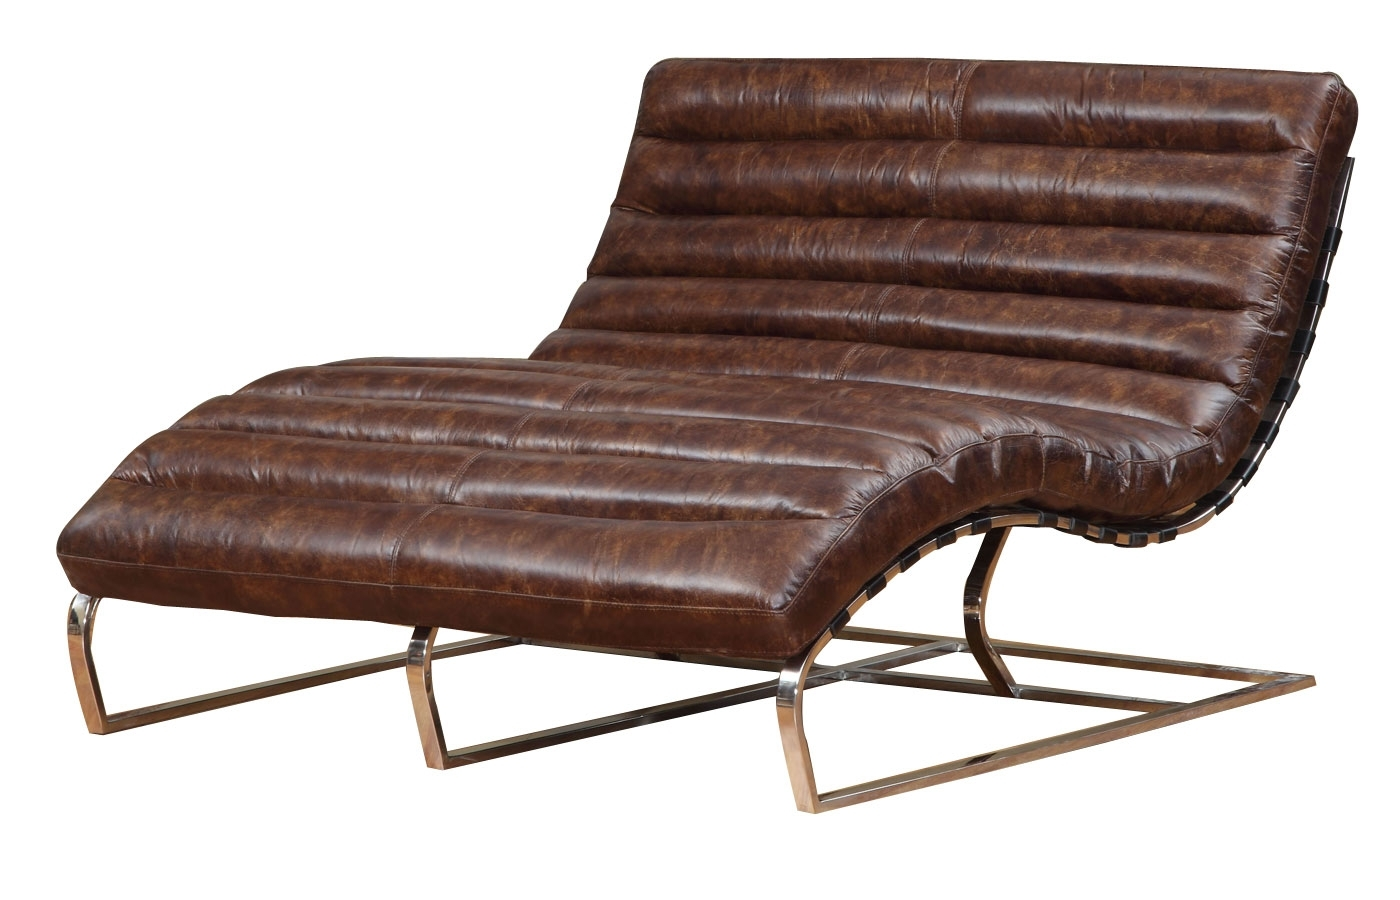 Preferred Double Chaise Lounge Sofas Regarding Furniture (View 14 of 15)